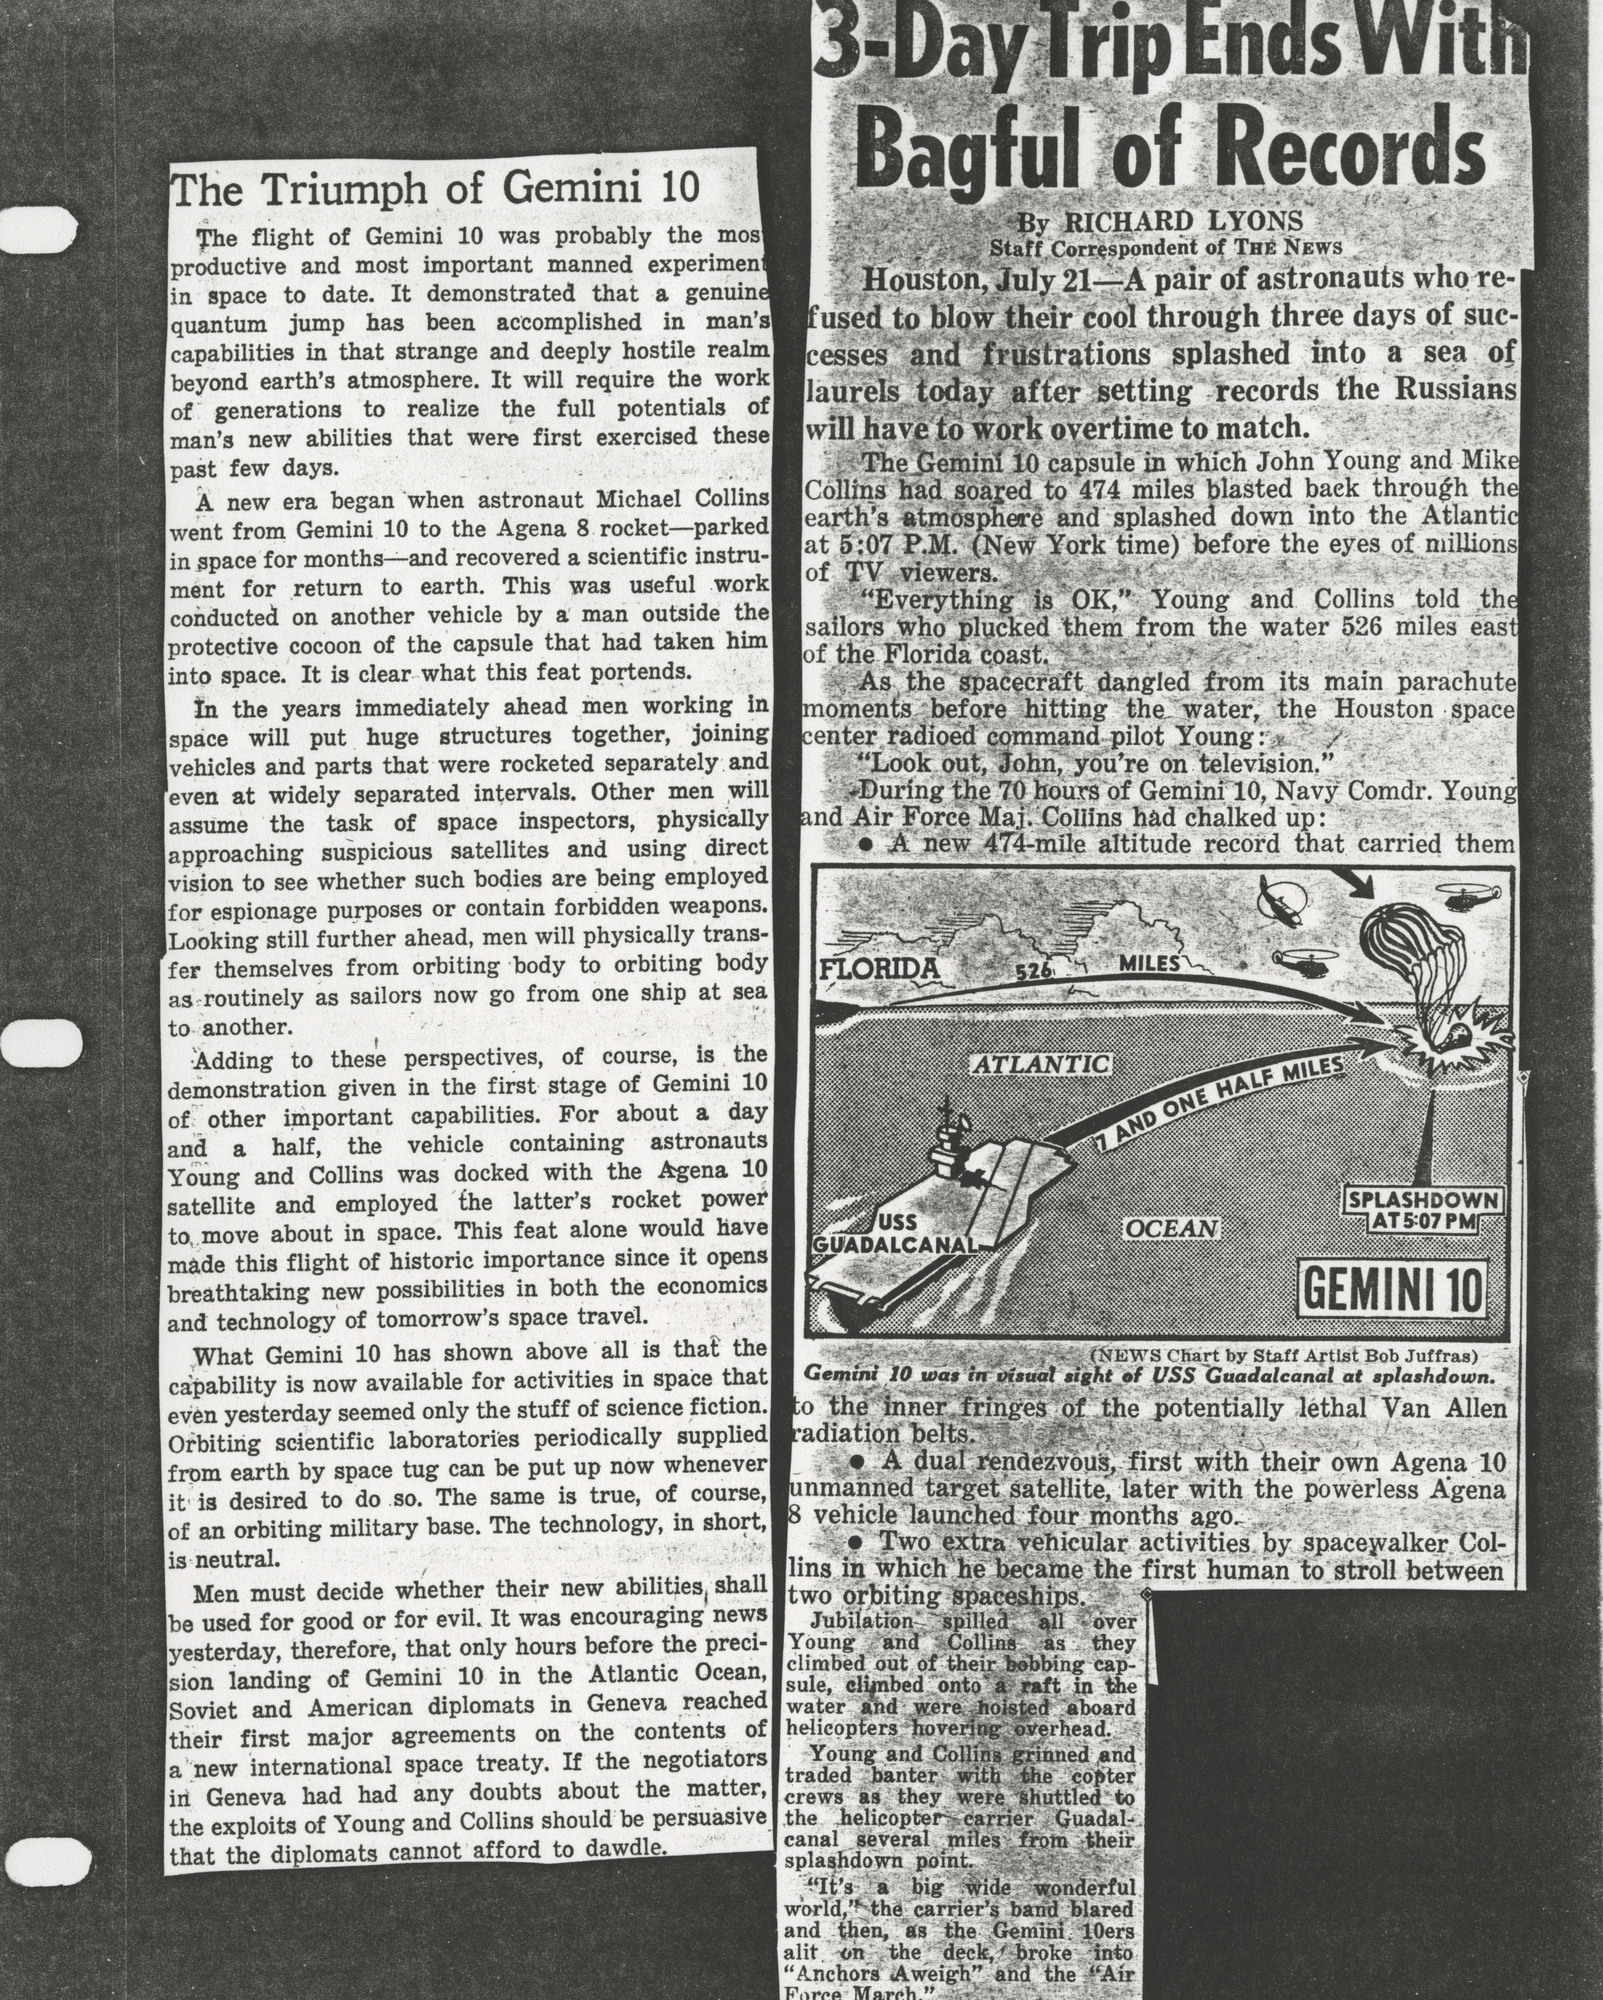 http://spec.lib.vt.edu/pickup/Omeka_upload/Ms1989-029_B07_F2_Clippings_1966_ND_04.jpg